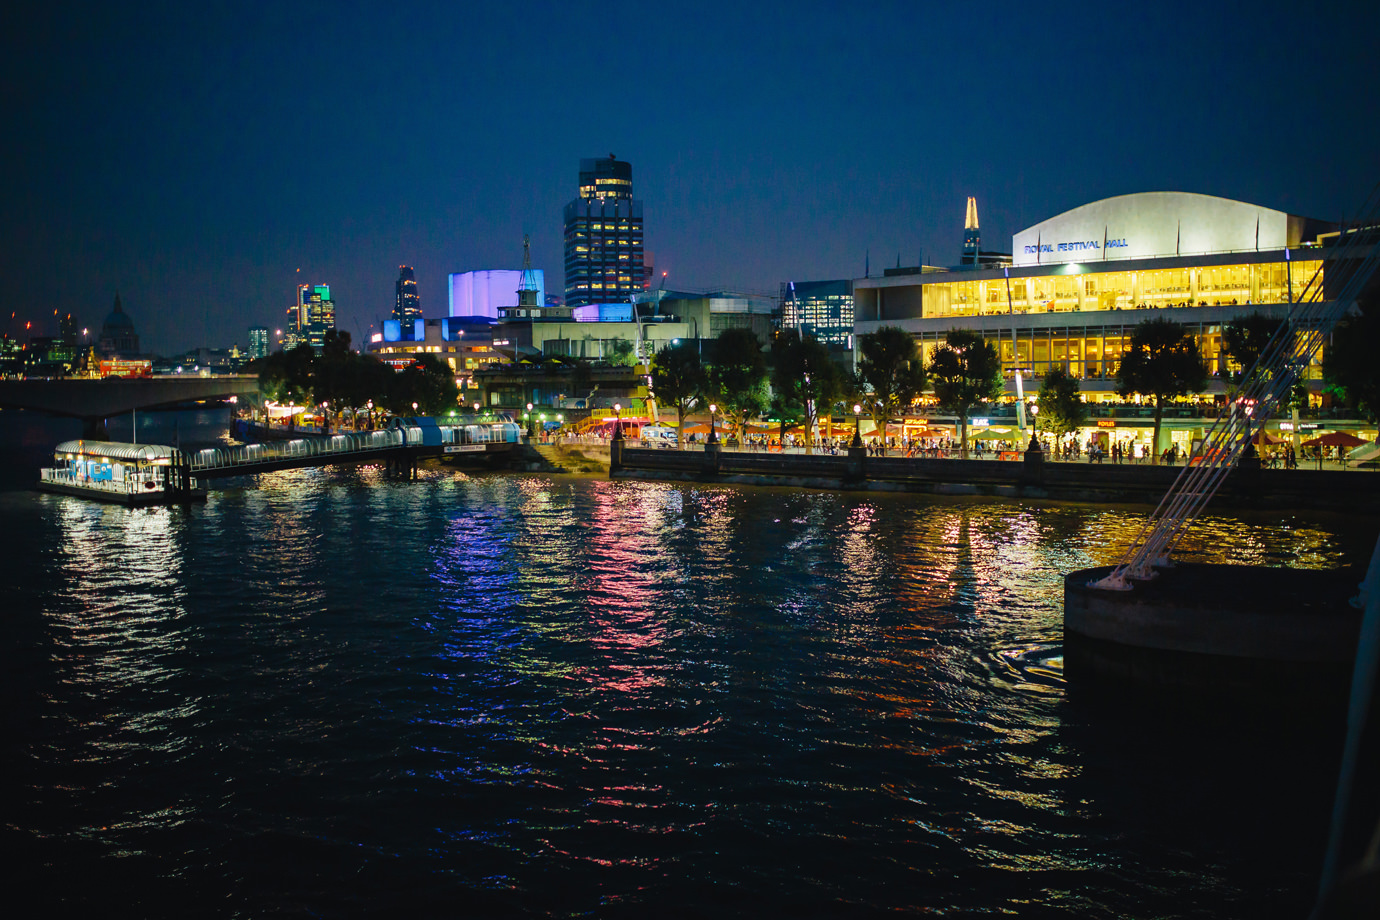 Royal Festival Hall, Southbank, at night. London wedding photography